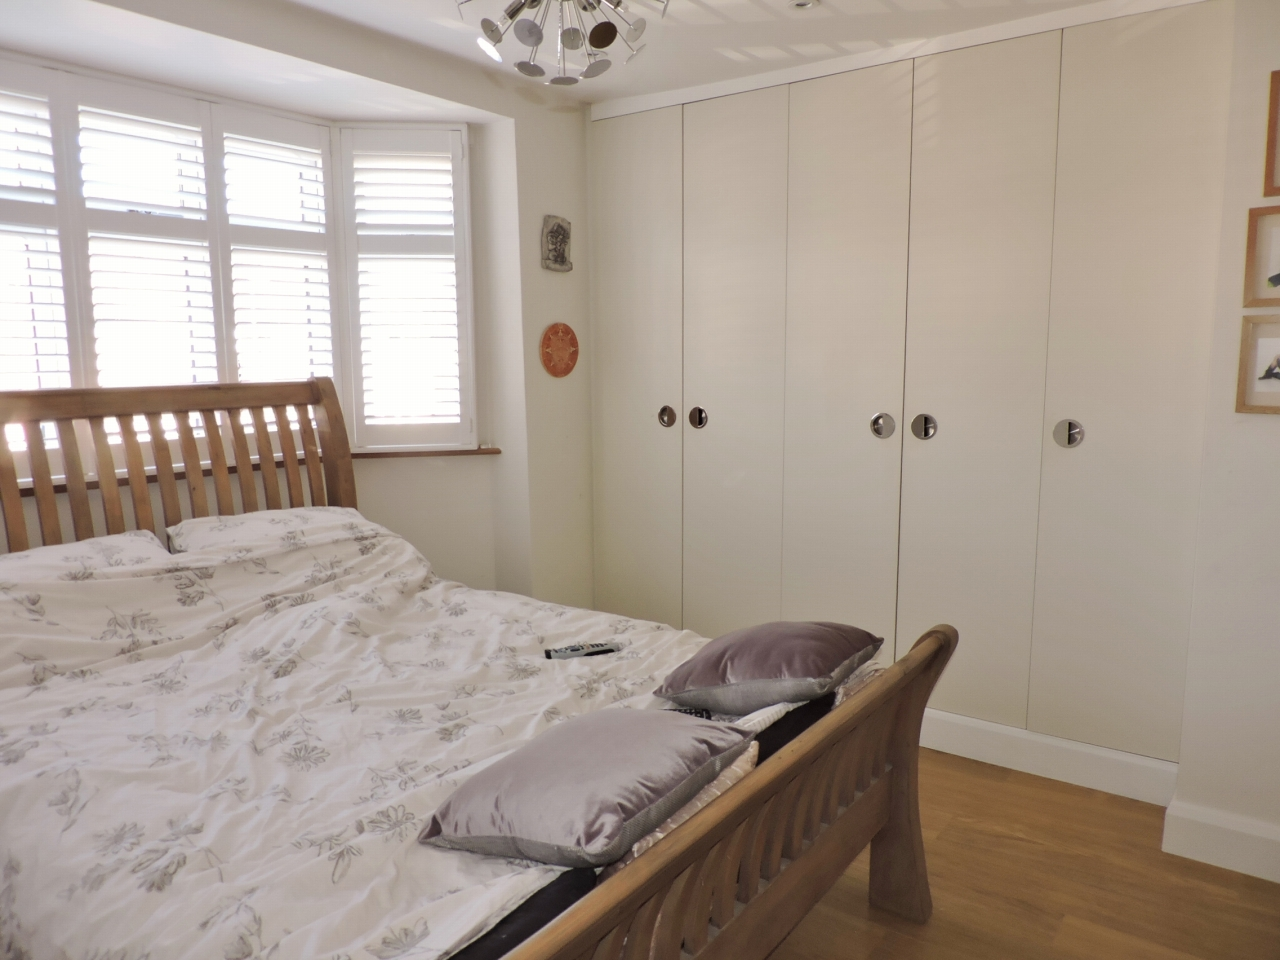 3 bedroom semi-detached house SSTC in New Malden - Photograph 12